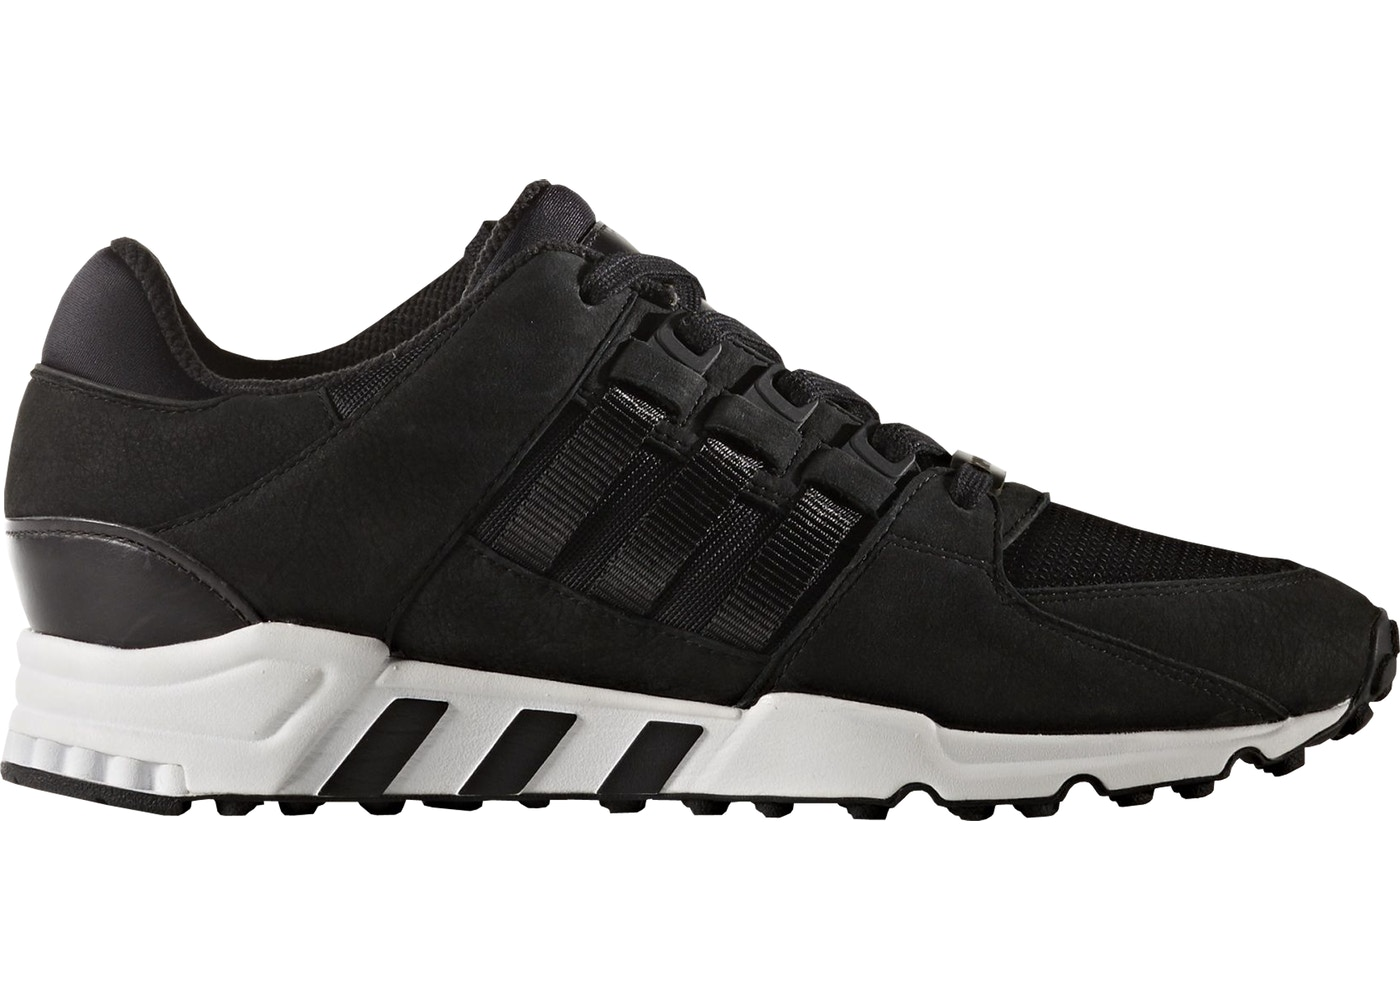 ... adidas EQT Support RF Milled Leather Black ... 8fa8288be